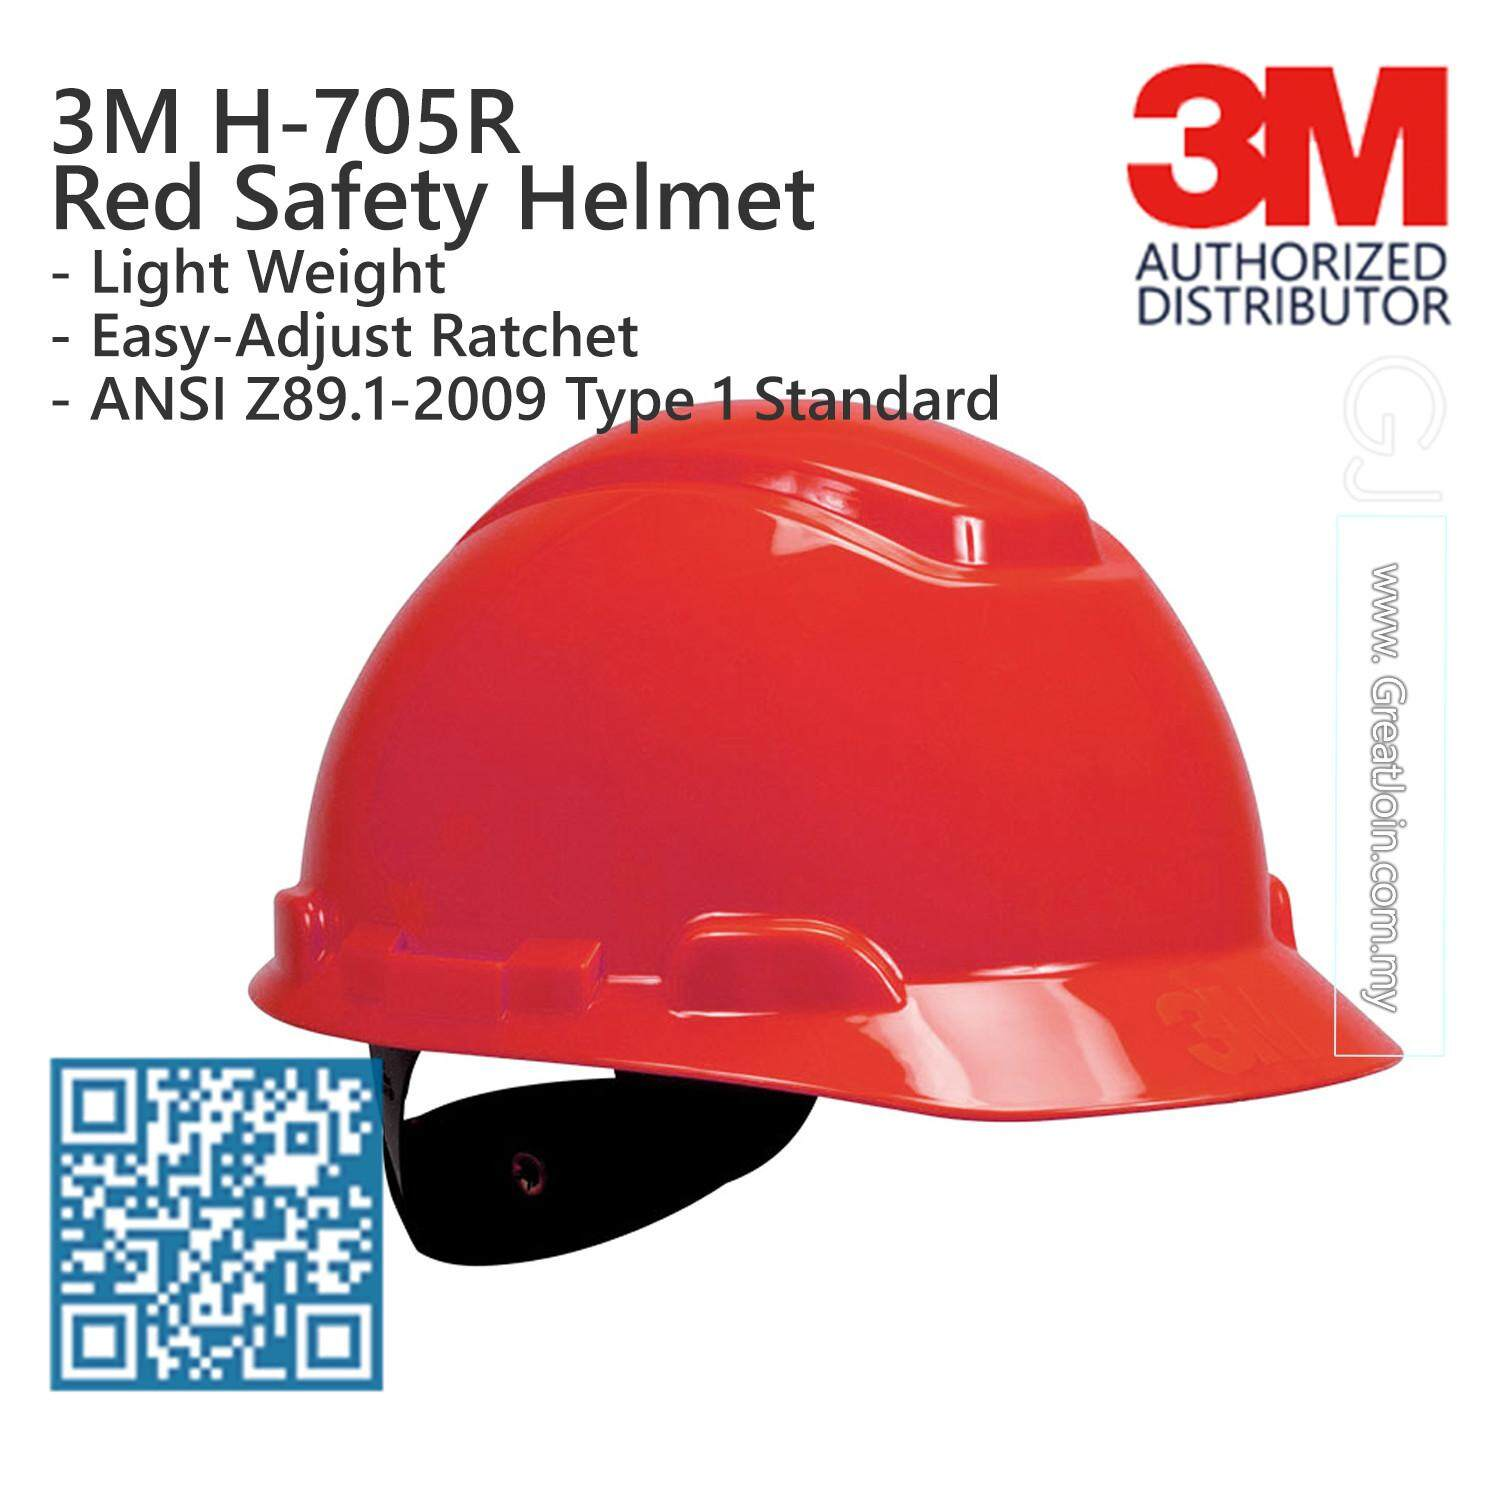 3M H-705R Red Colour Safety Helmet/ Hard Hat/ 4-Point Suspension Ratchet Type/ ANSI Approval [1 piece] Made in USA